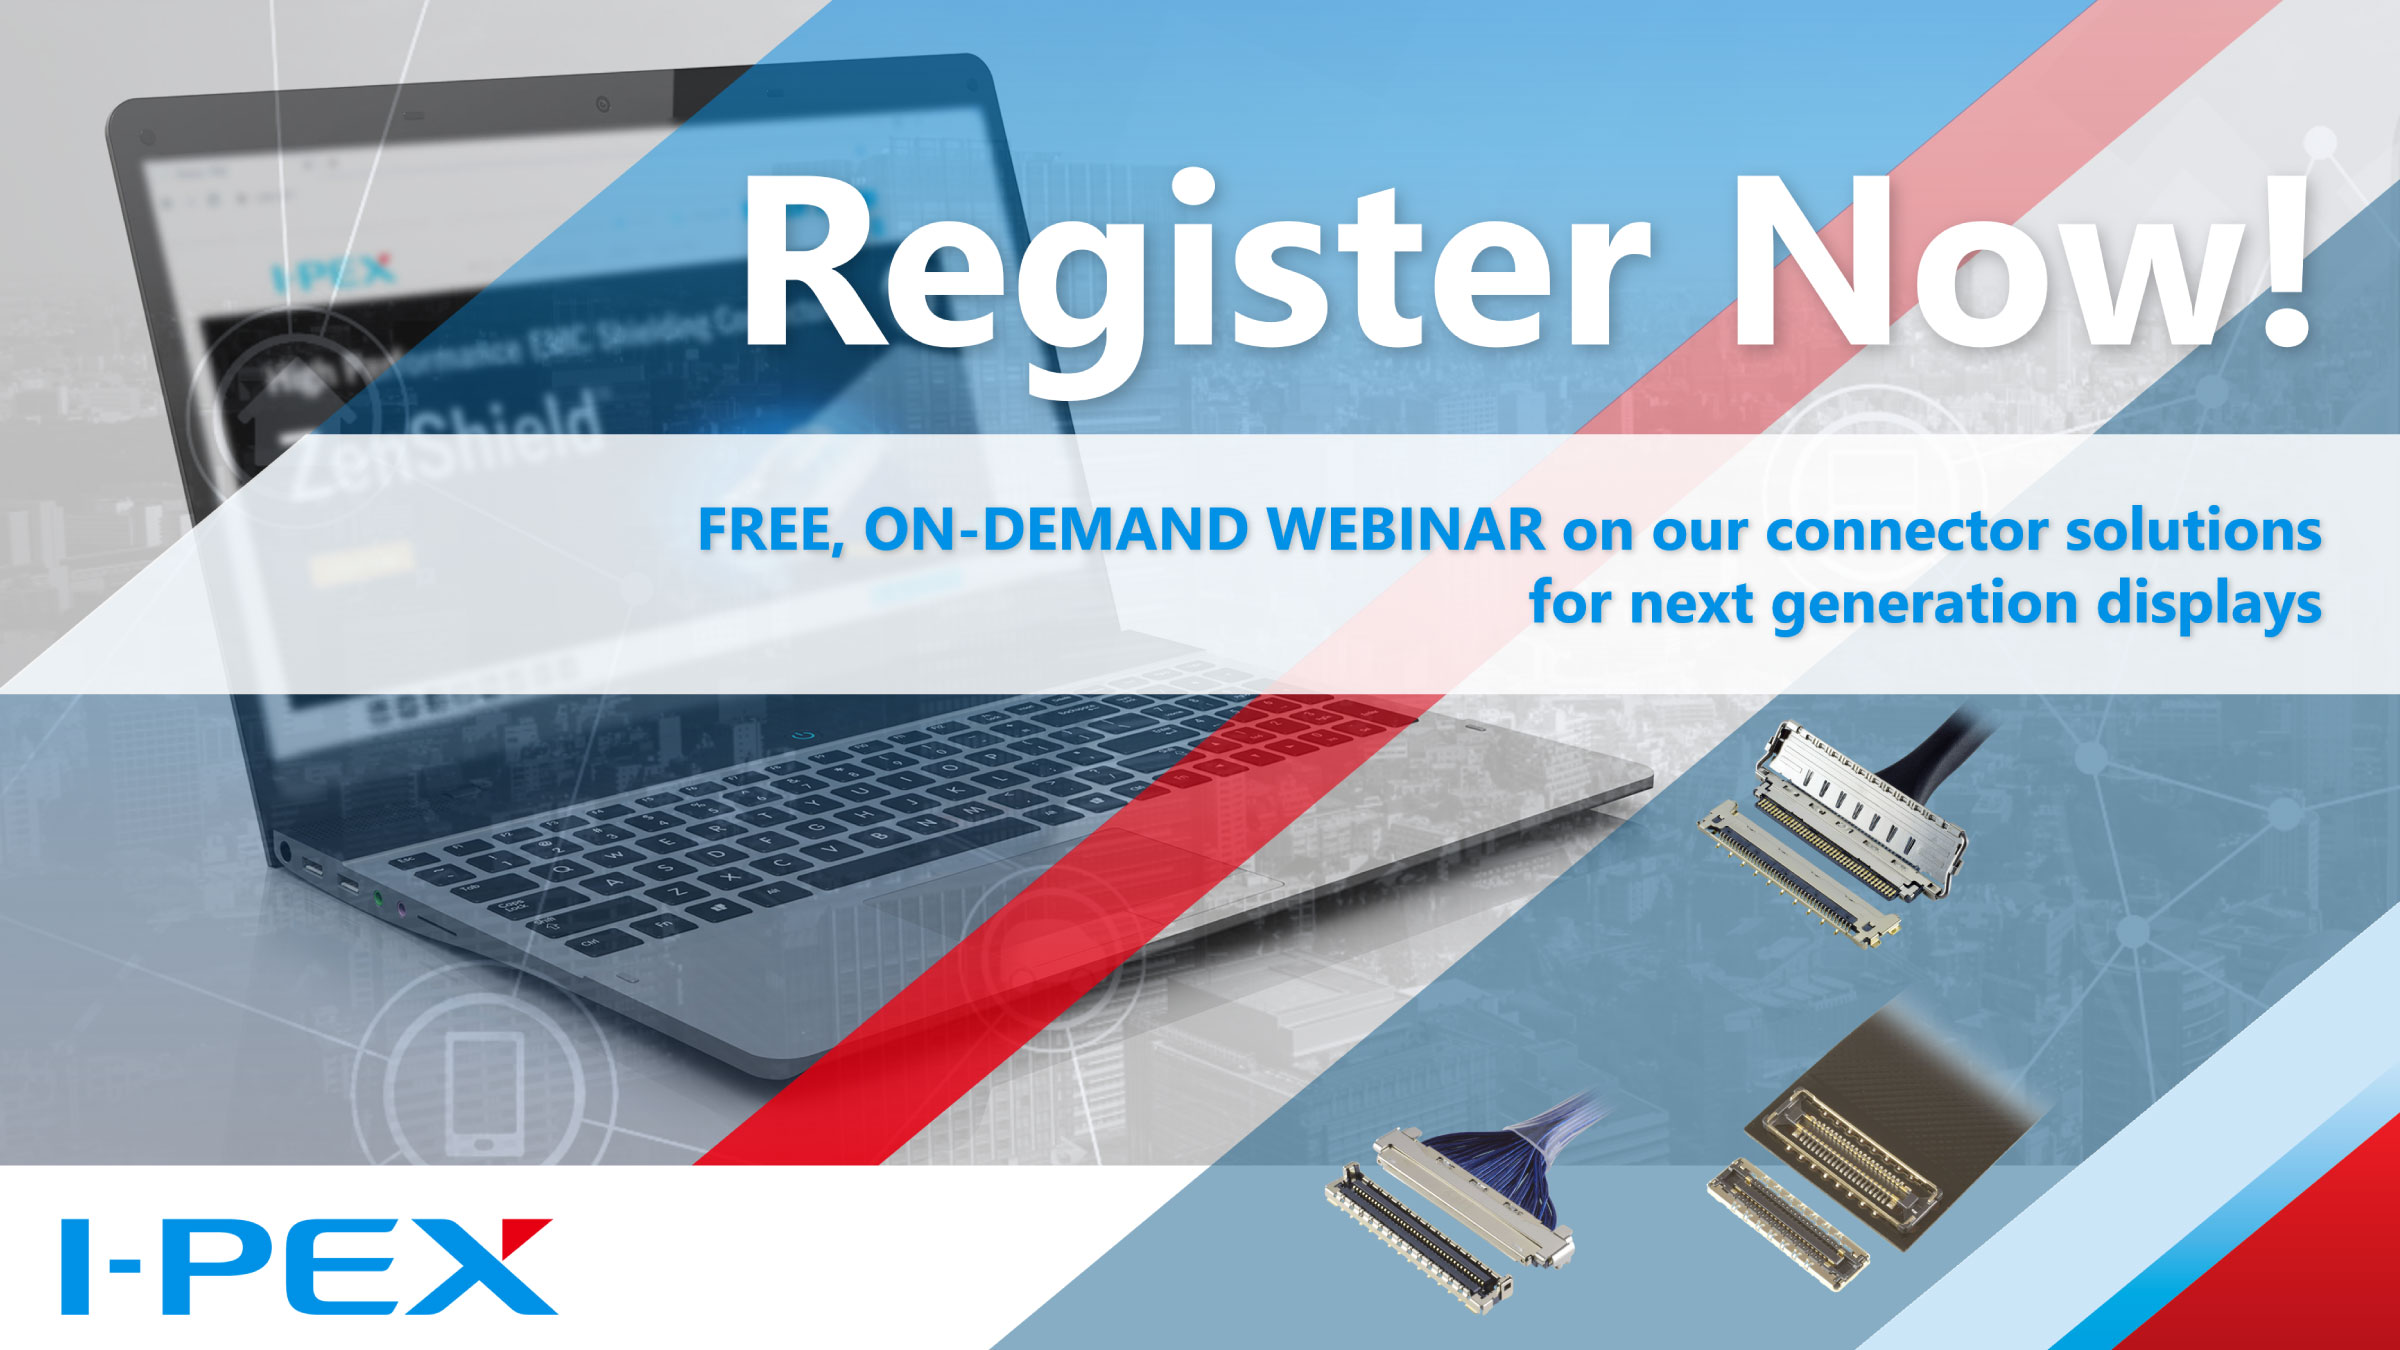 On-demand webinar